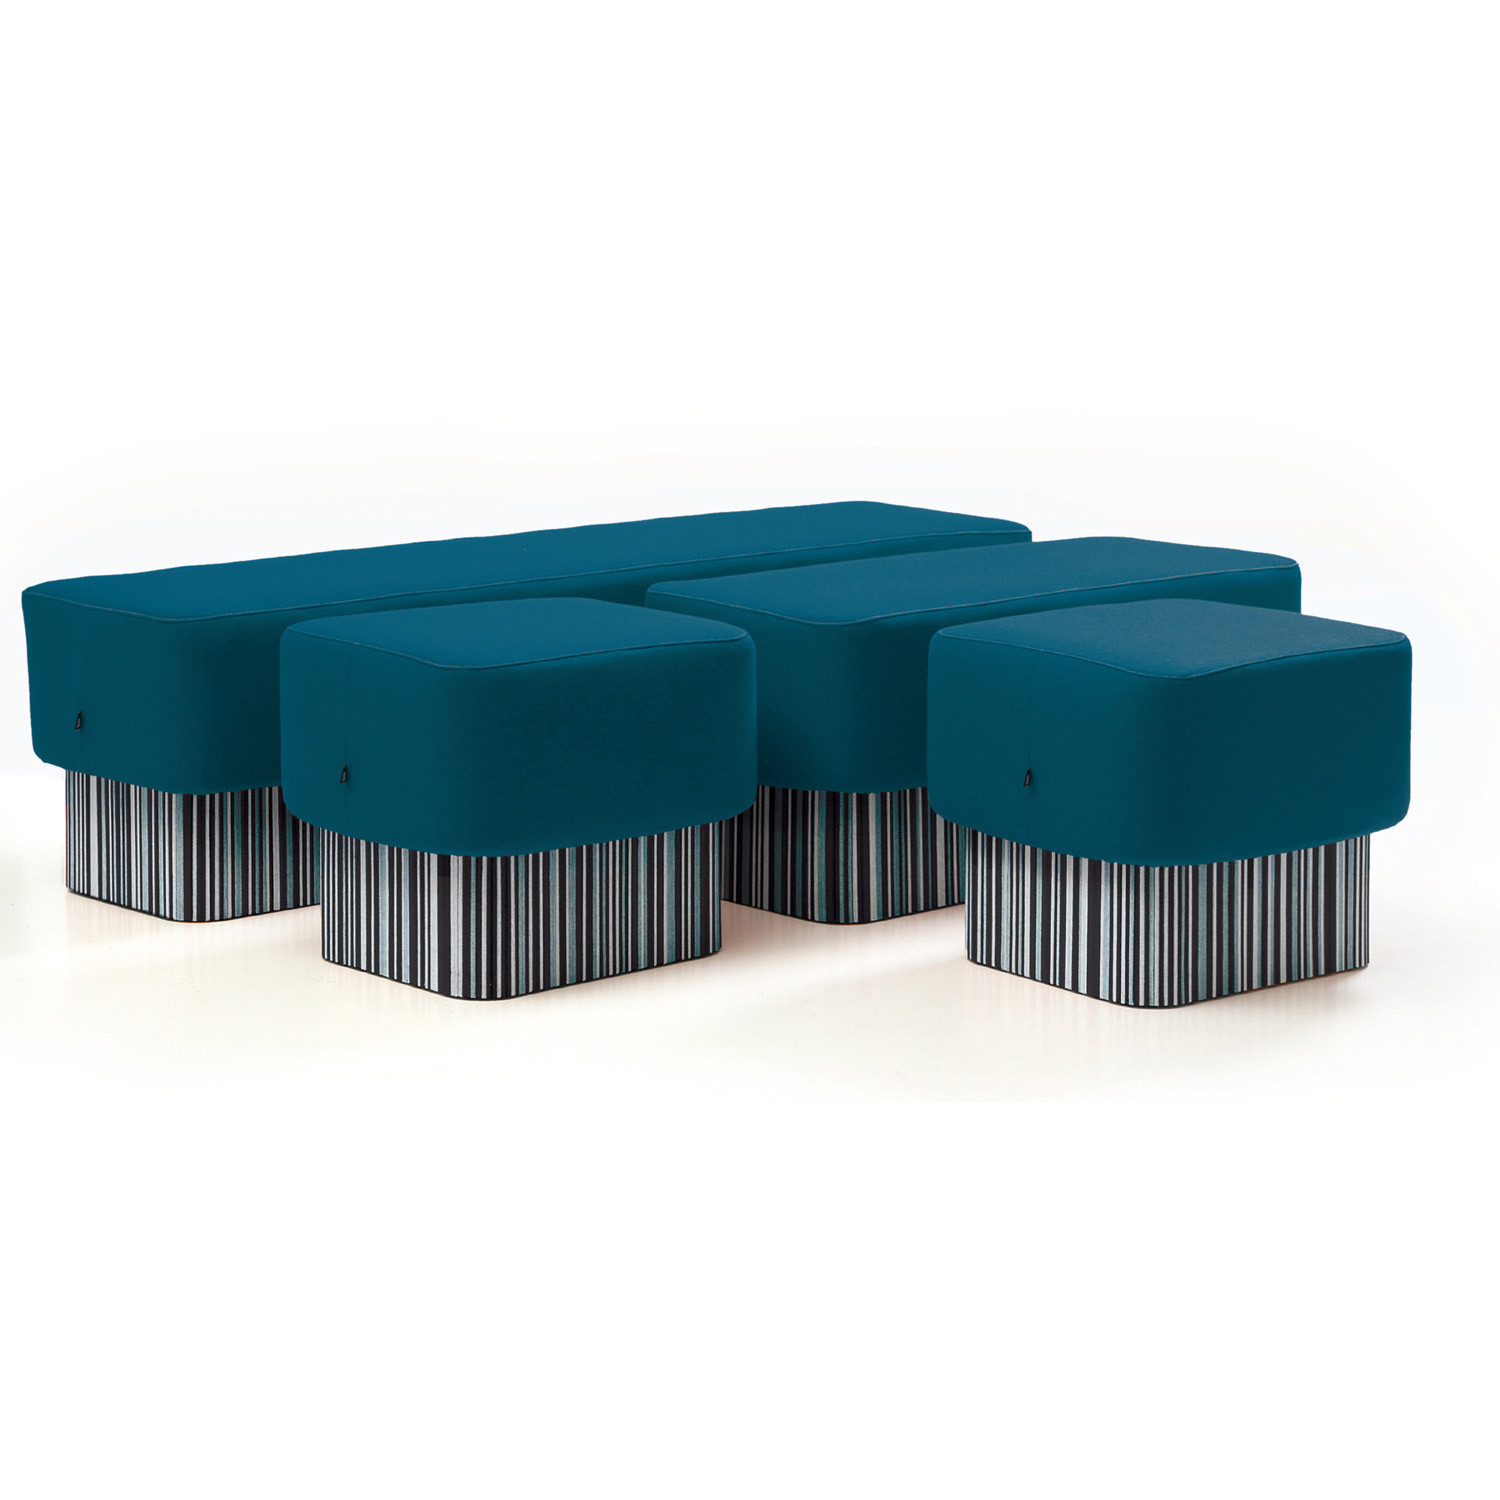 BuzziSeat Stool and Benches by BuzziSpace